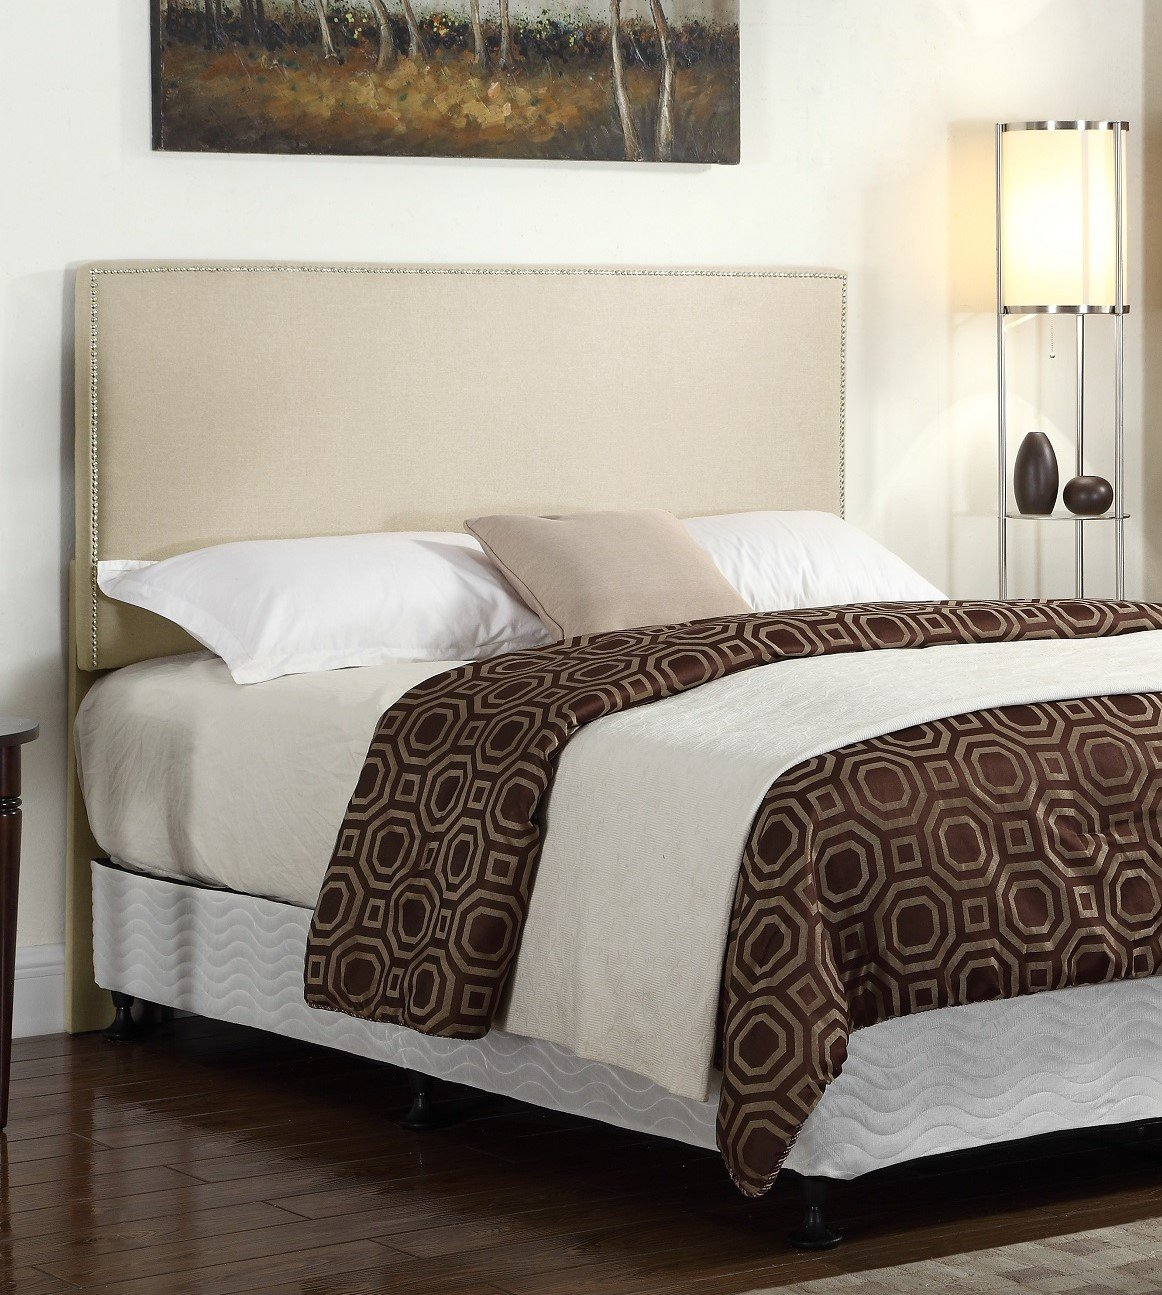 Container Furniture Direct Doak Collection Modern Linen Fabric Upholstered Bedroom Headboard with Nailhead Trim, Beige